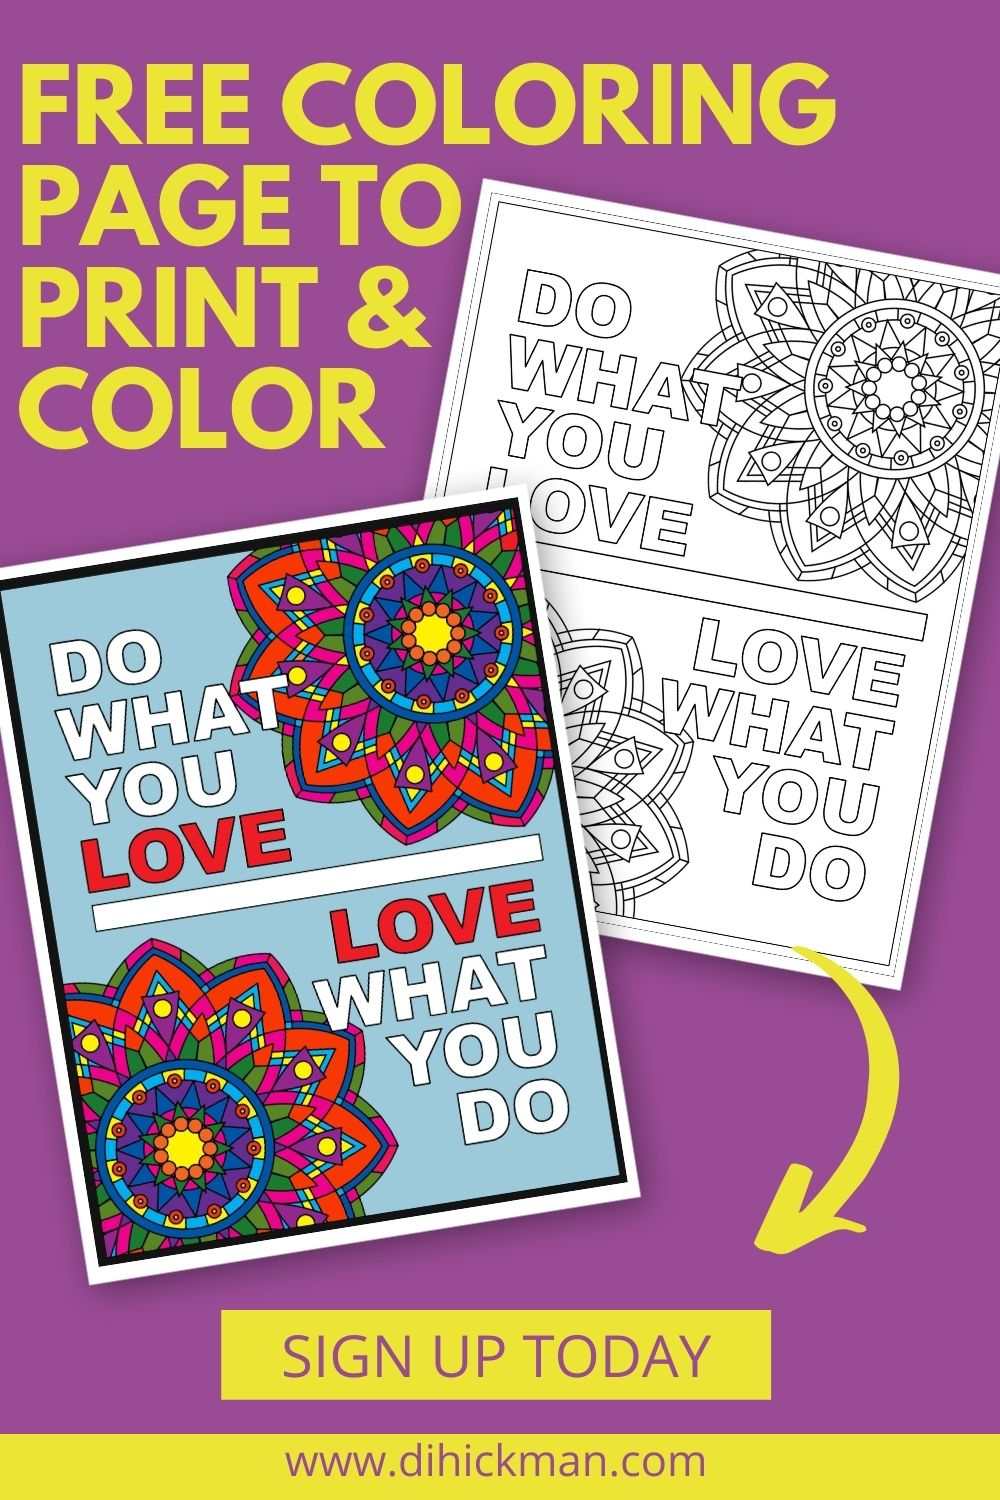 Free coloring page to print & color